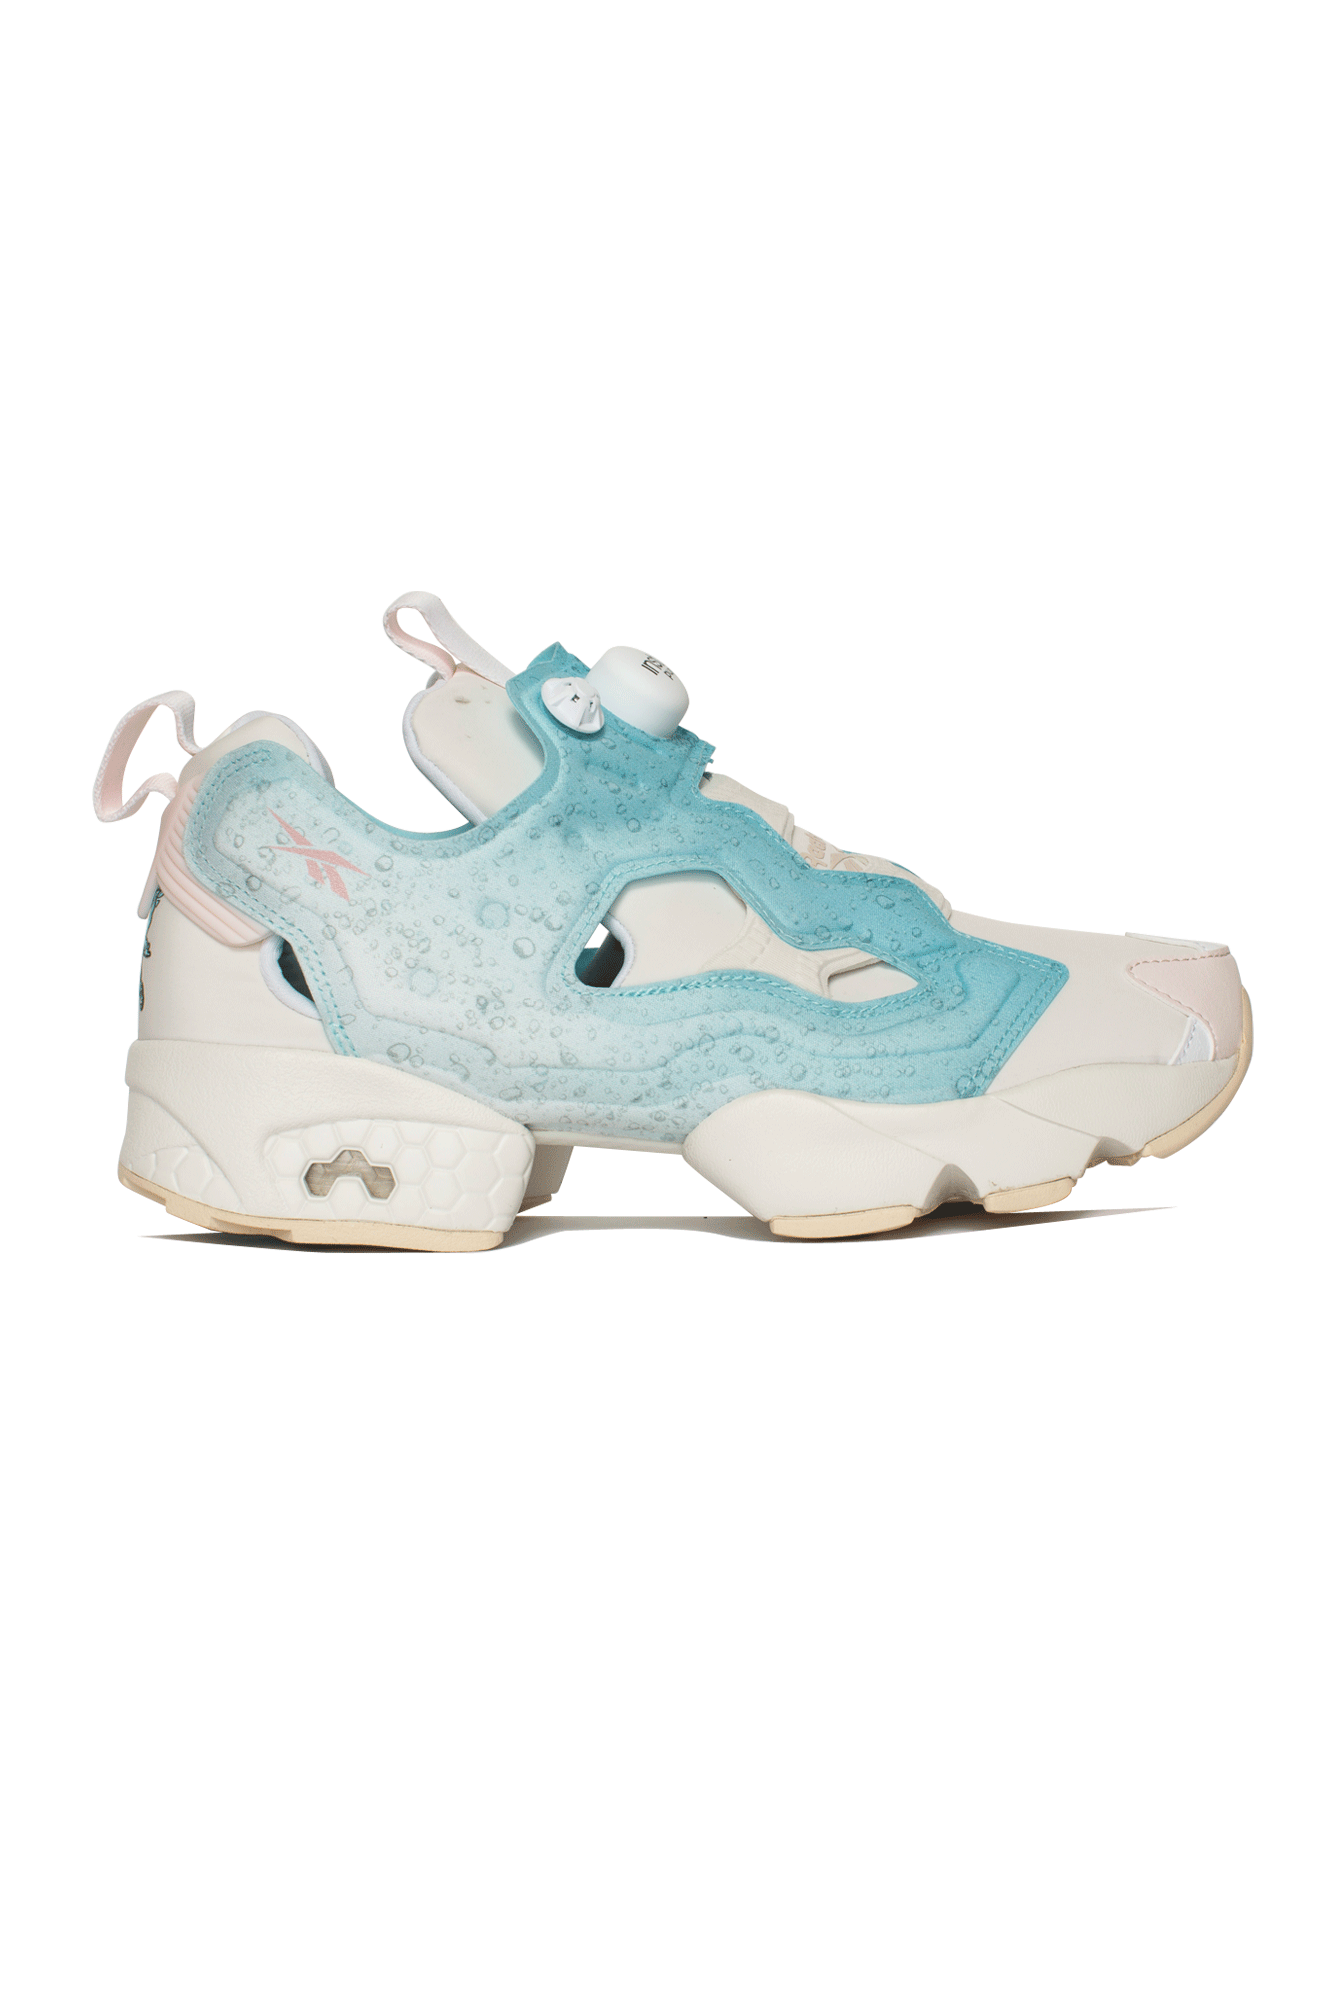 Reebok Sneakers Instapump Fury OG NM Blue FW7698#000#LGHBLU#7,5 - One Block Down